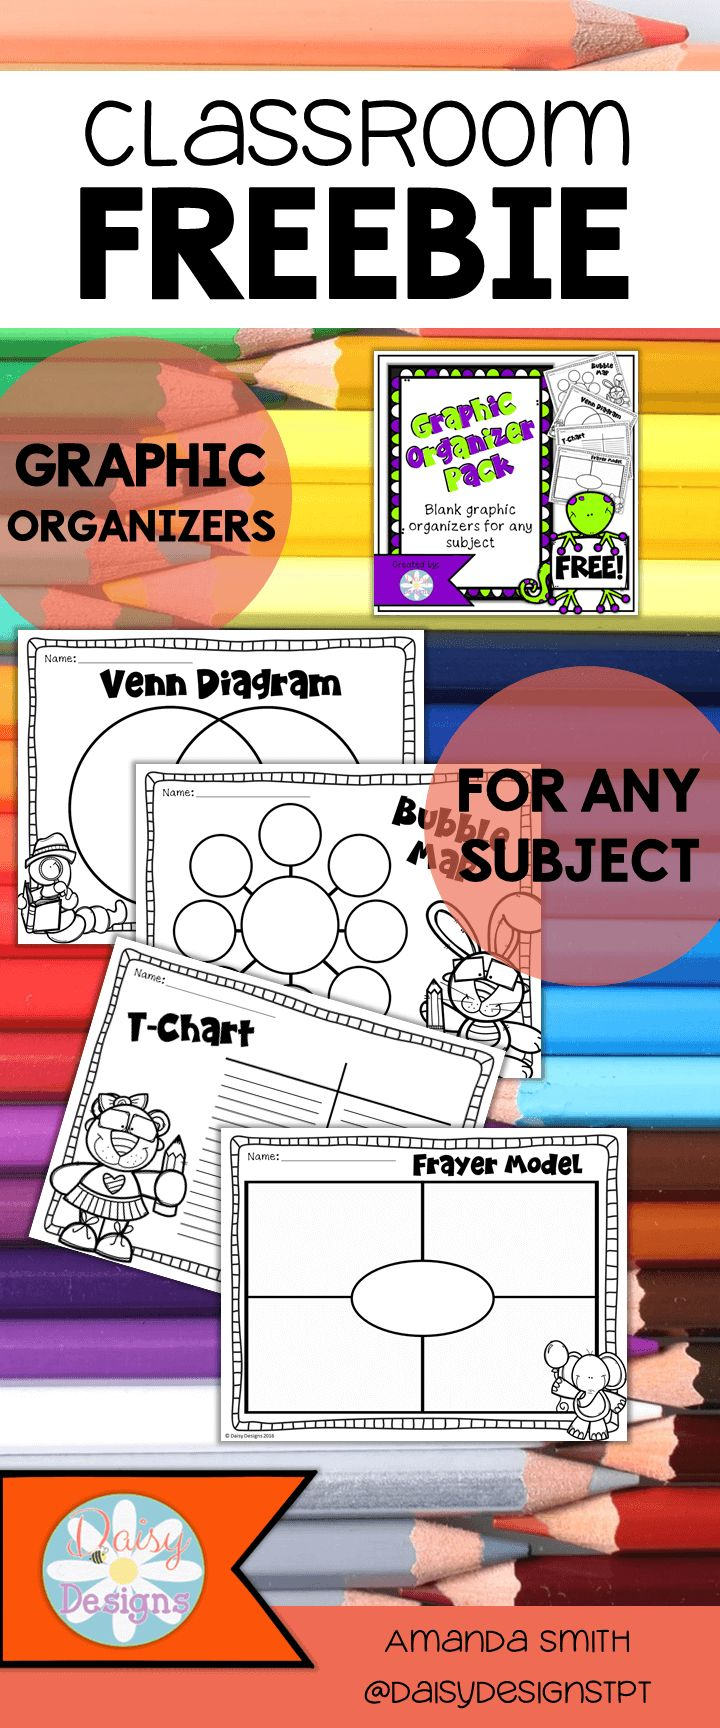 Quick and easy to print graphic organizers for any subject. These NO PREP printables are perfect for primary grade levels and can be used for anything!